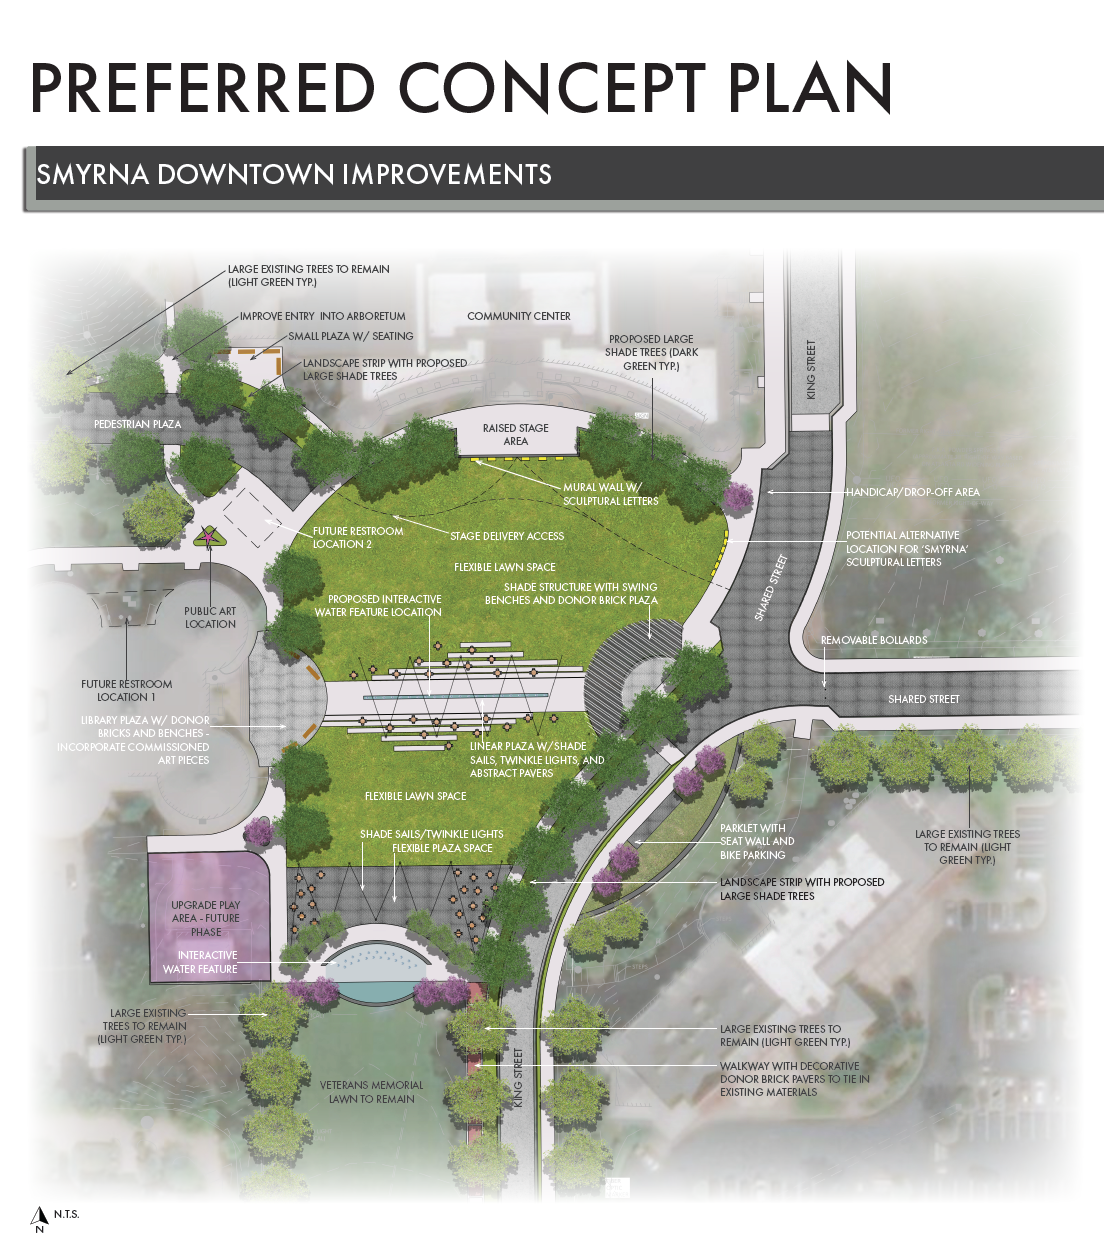 Smyrna downtown redesign updated concept plan Oct 2021